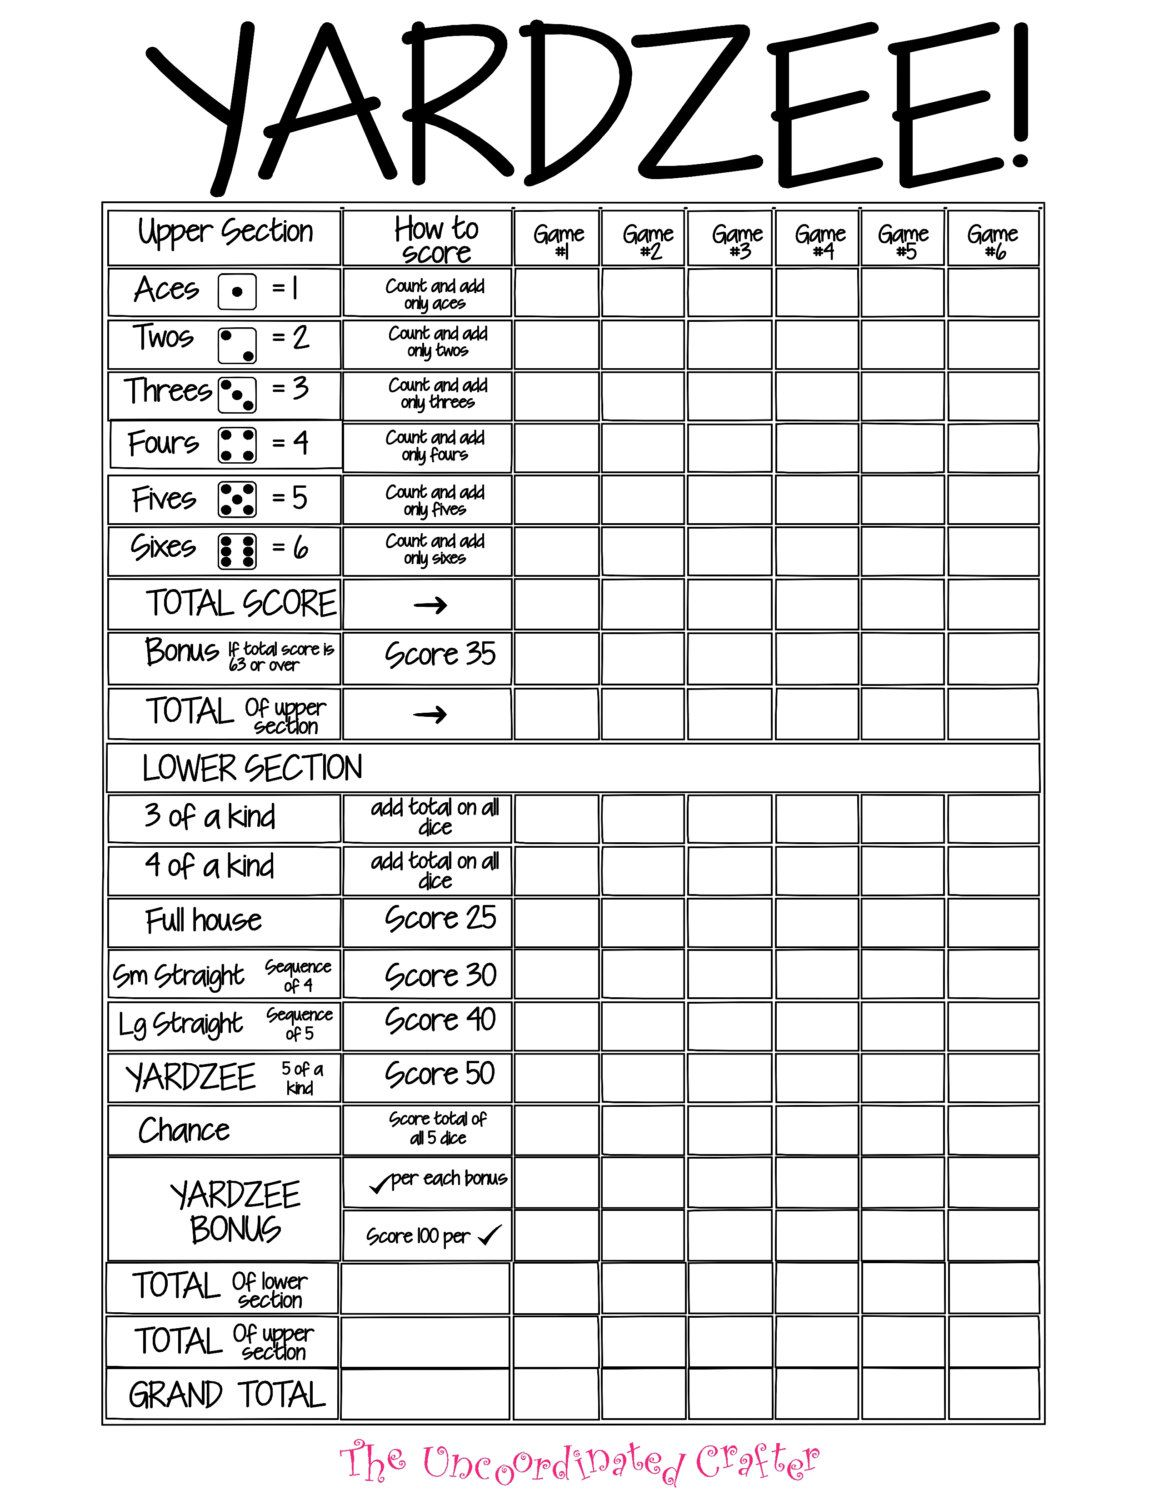 image about Free Printable Yardzee Rules called Printable 18x24 YARDZEE Ranking Card history with Uncoordinated